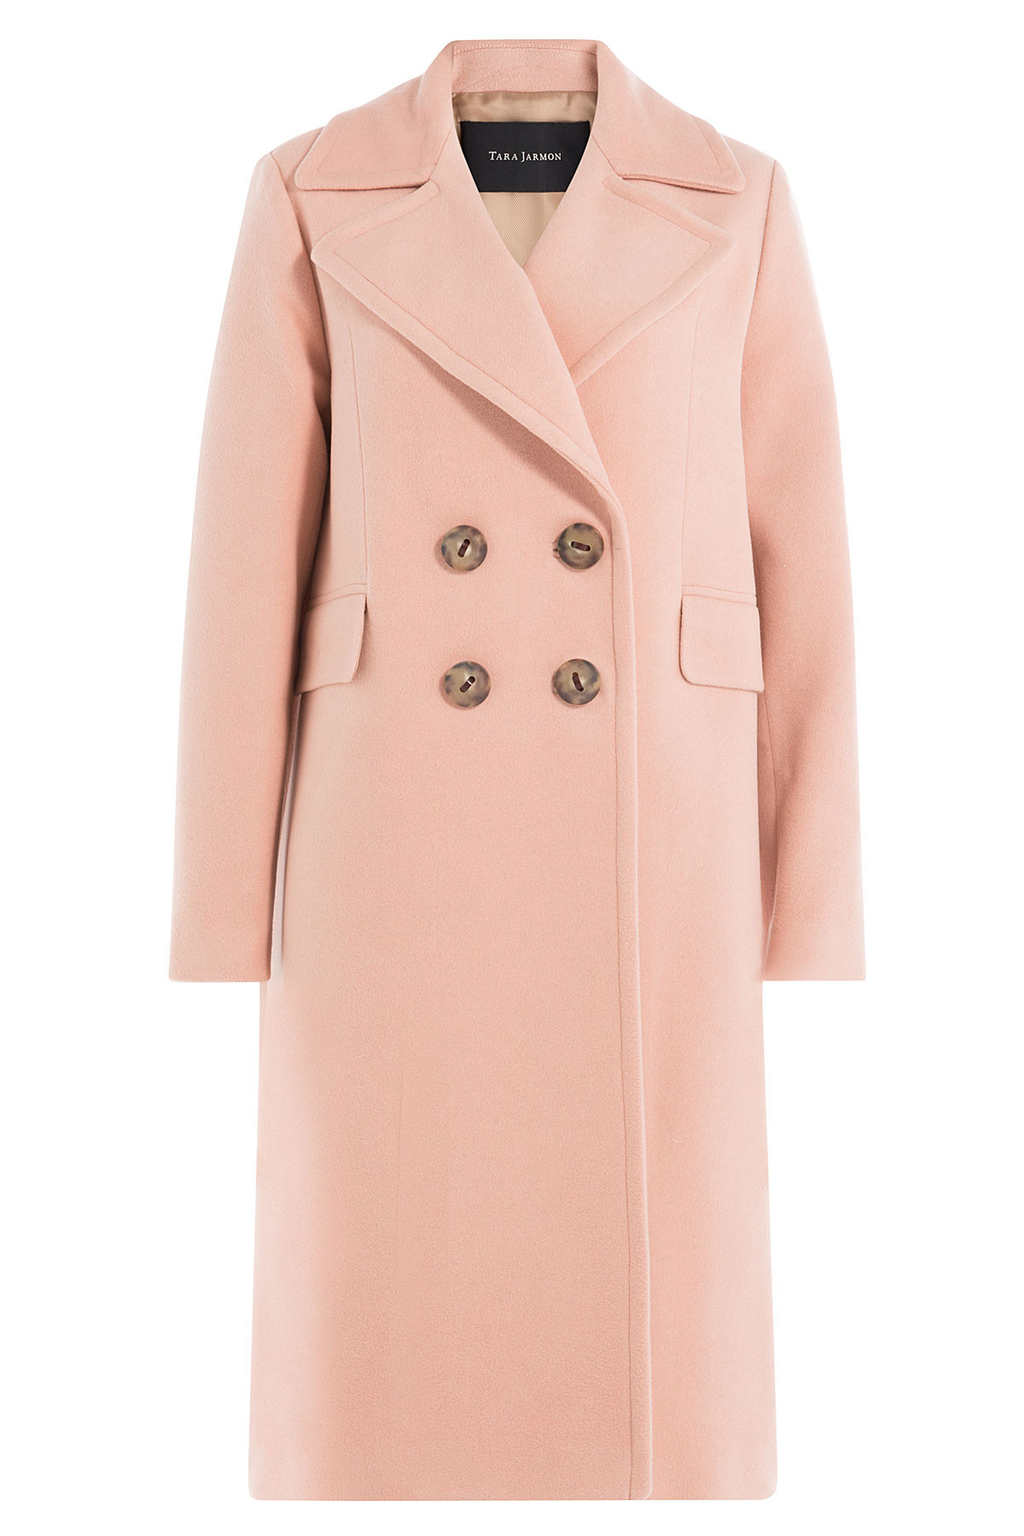 Coat With Virgin Wool And Cashmere Rose - pattern: plain; collar: wide lapels; style: double breasted; predominant colour: nude; occasions: casual, work, creative work; fit: tailored/fitted; fibres: wool - mix; length: below the knee; sleeve length: long sleeve; sleeve style: standard; collar break: medium; pattern type: fabric; texture group: woven bulky/heavy; season: a/w 2016